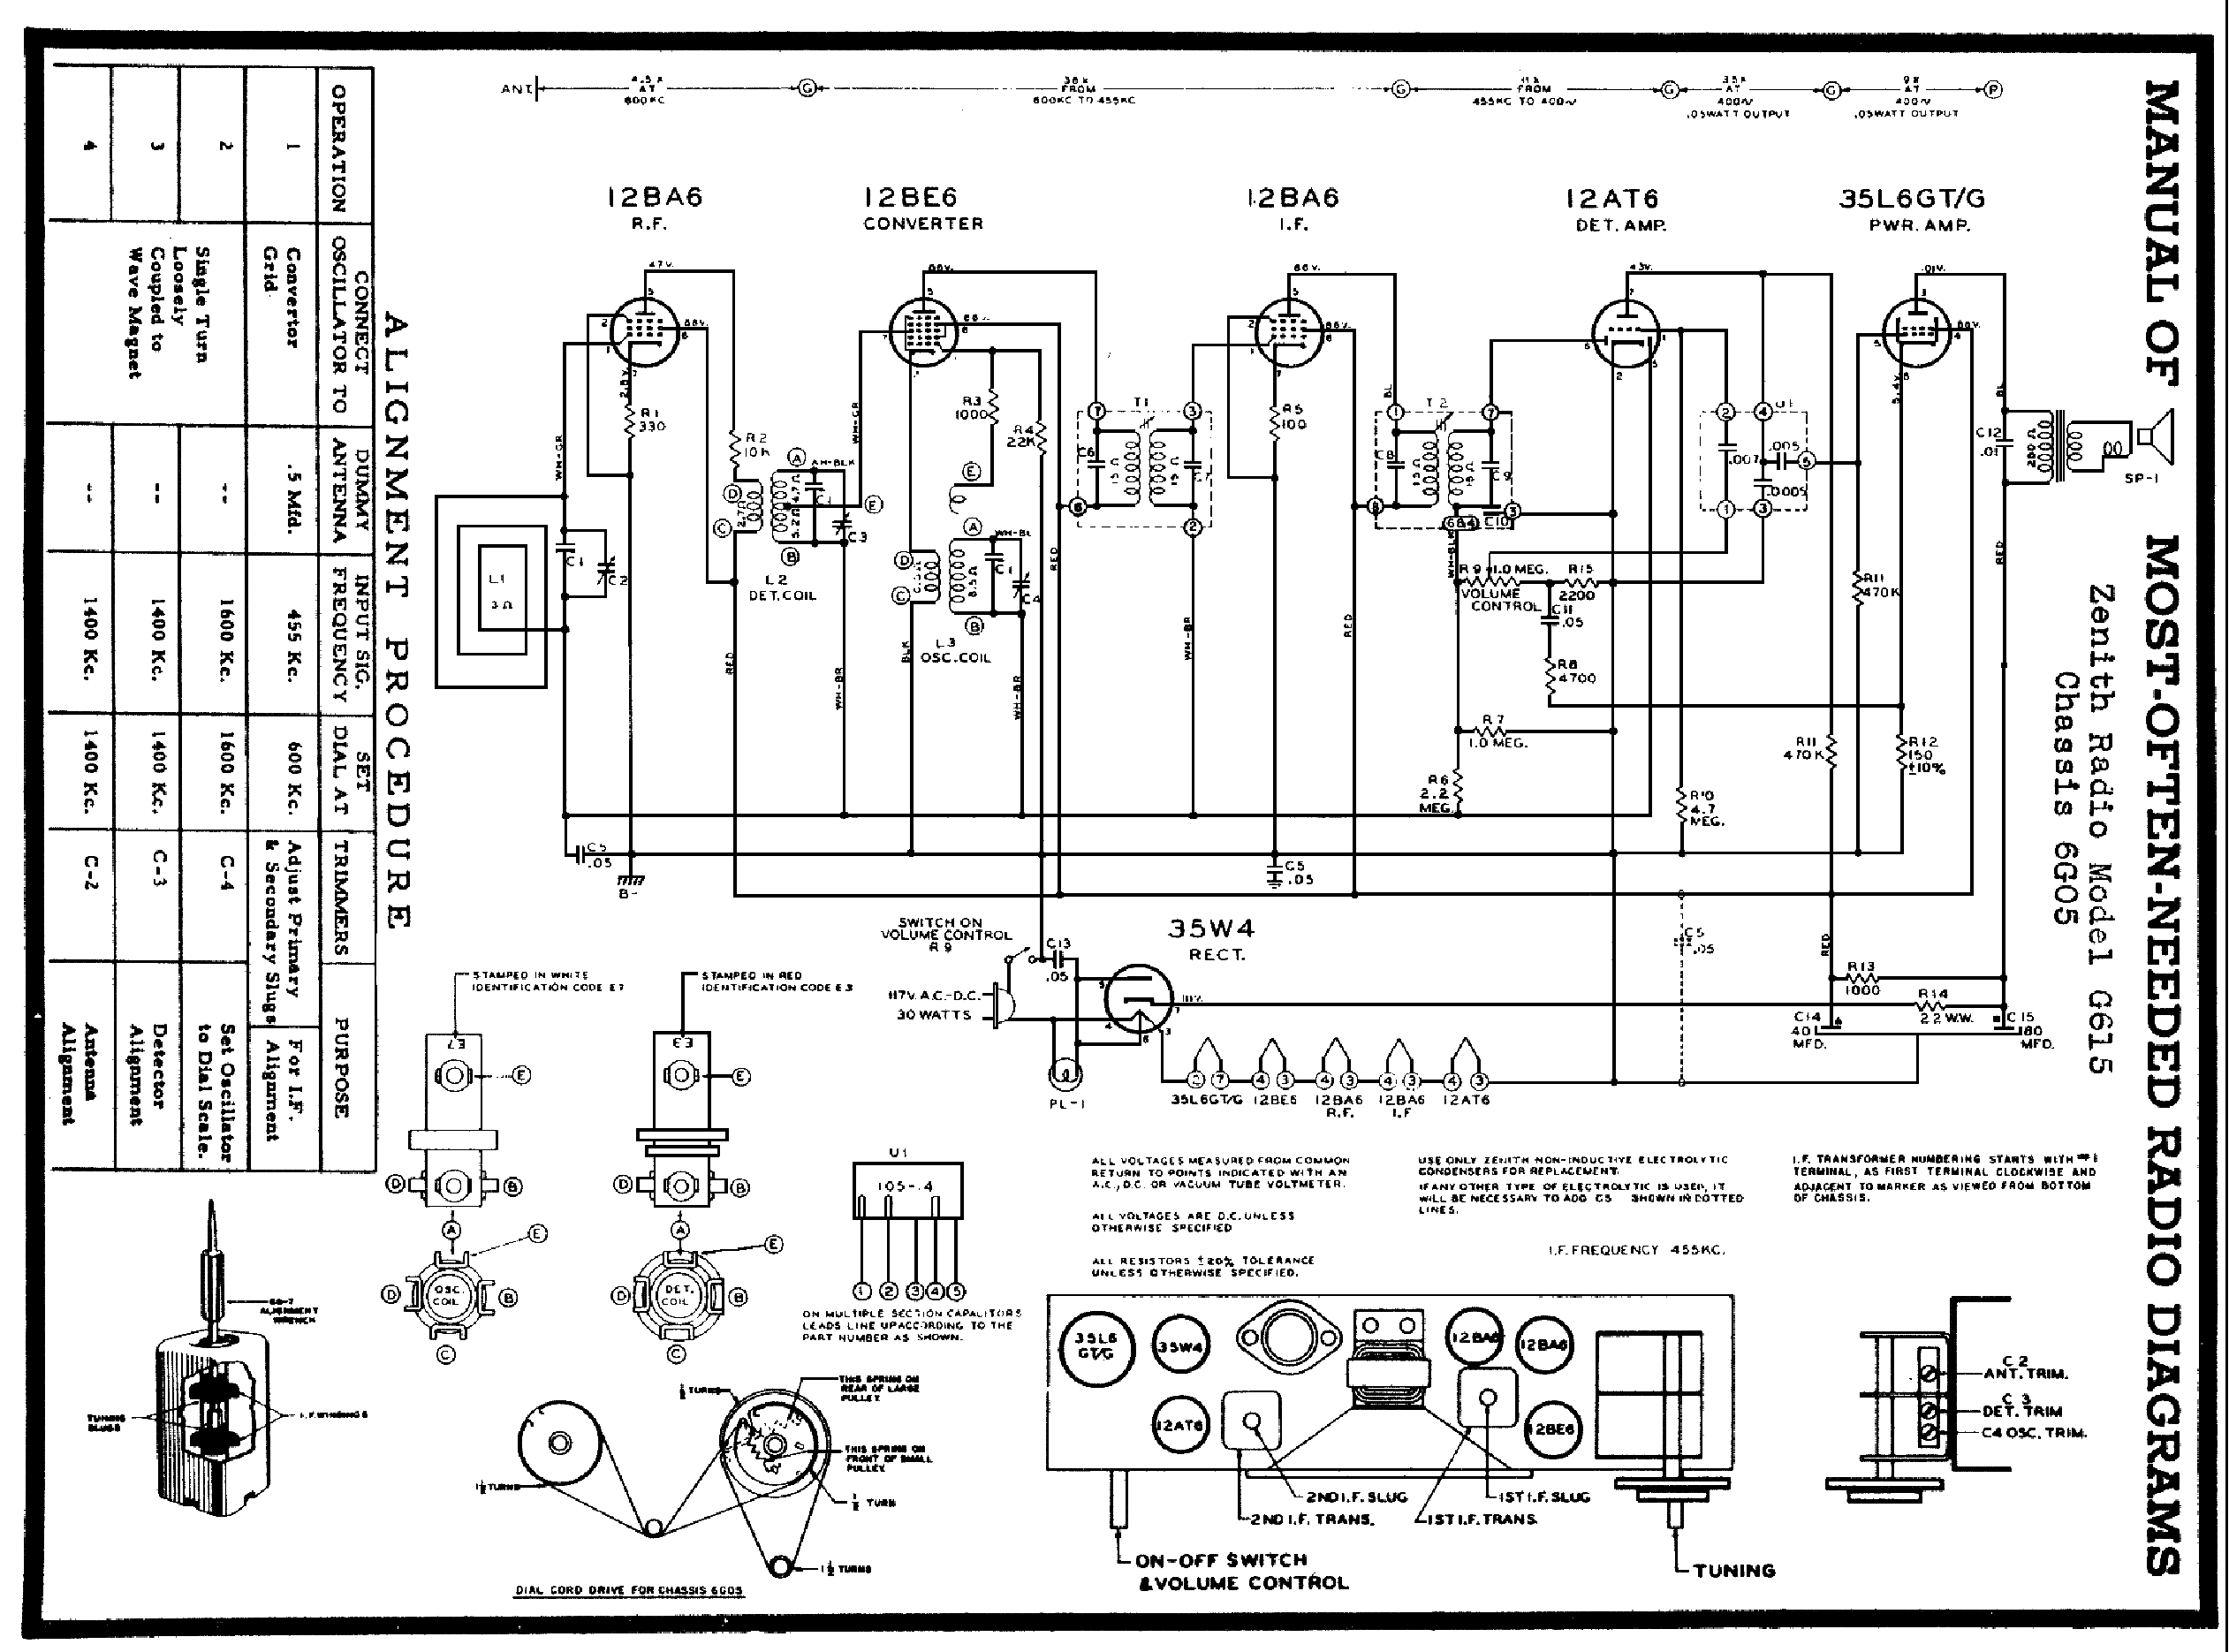 4g15 Wiring Diagram 2005 Ford Freestyle Fuse Box Location Begeboy Wiring Diagram Source